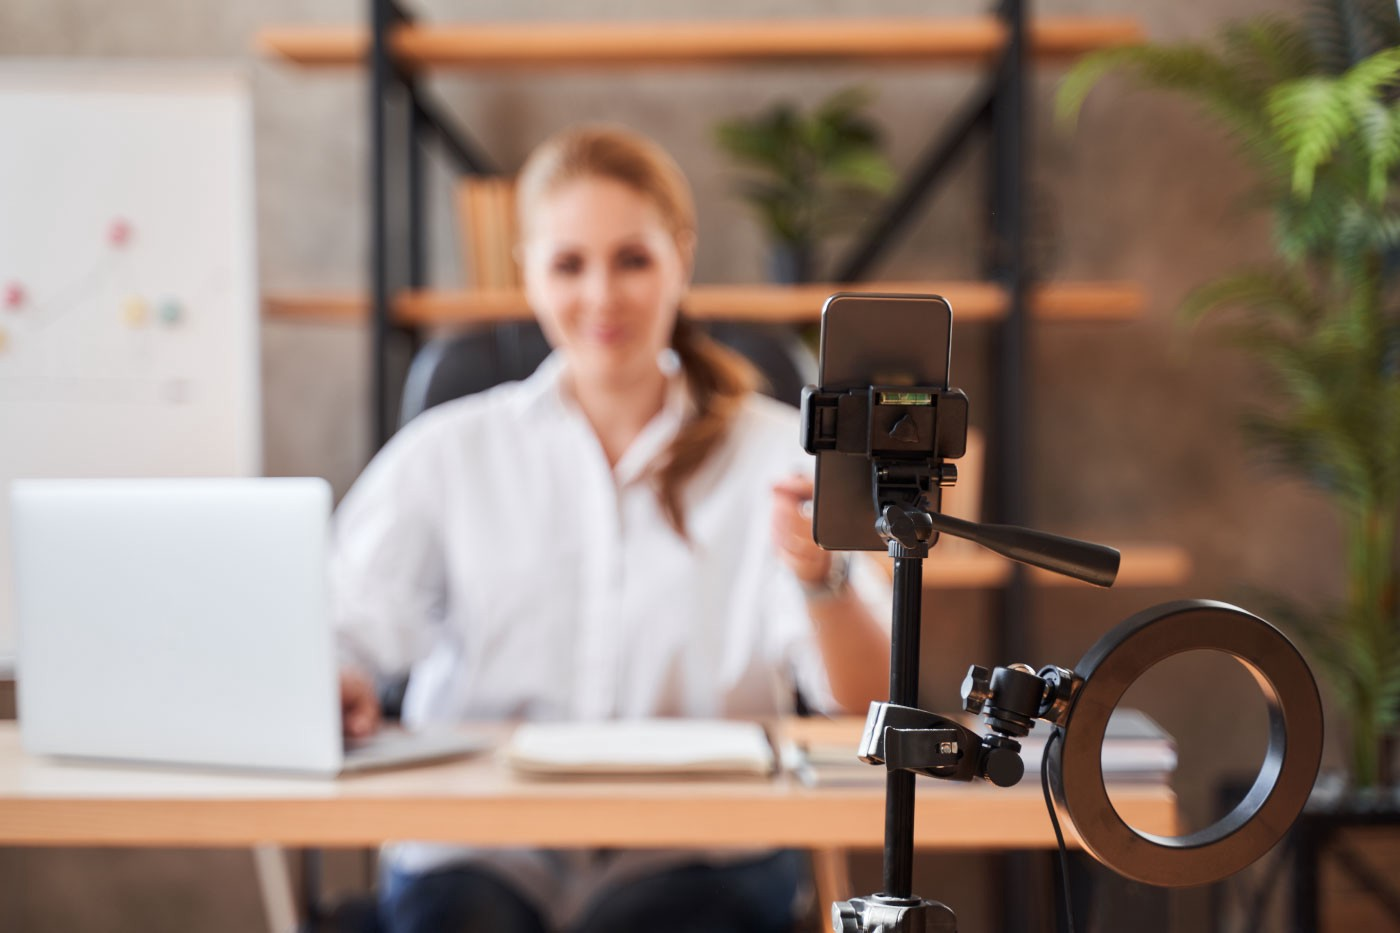 Woman at a desk in front of a ring light and phone on a tripod.